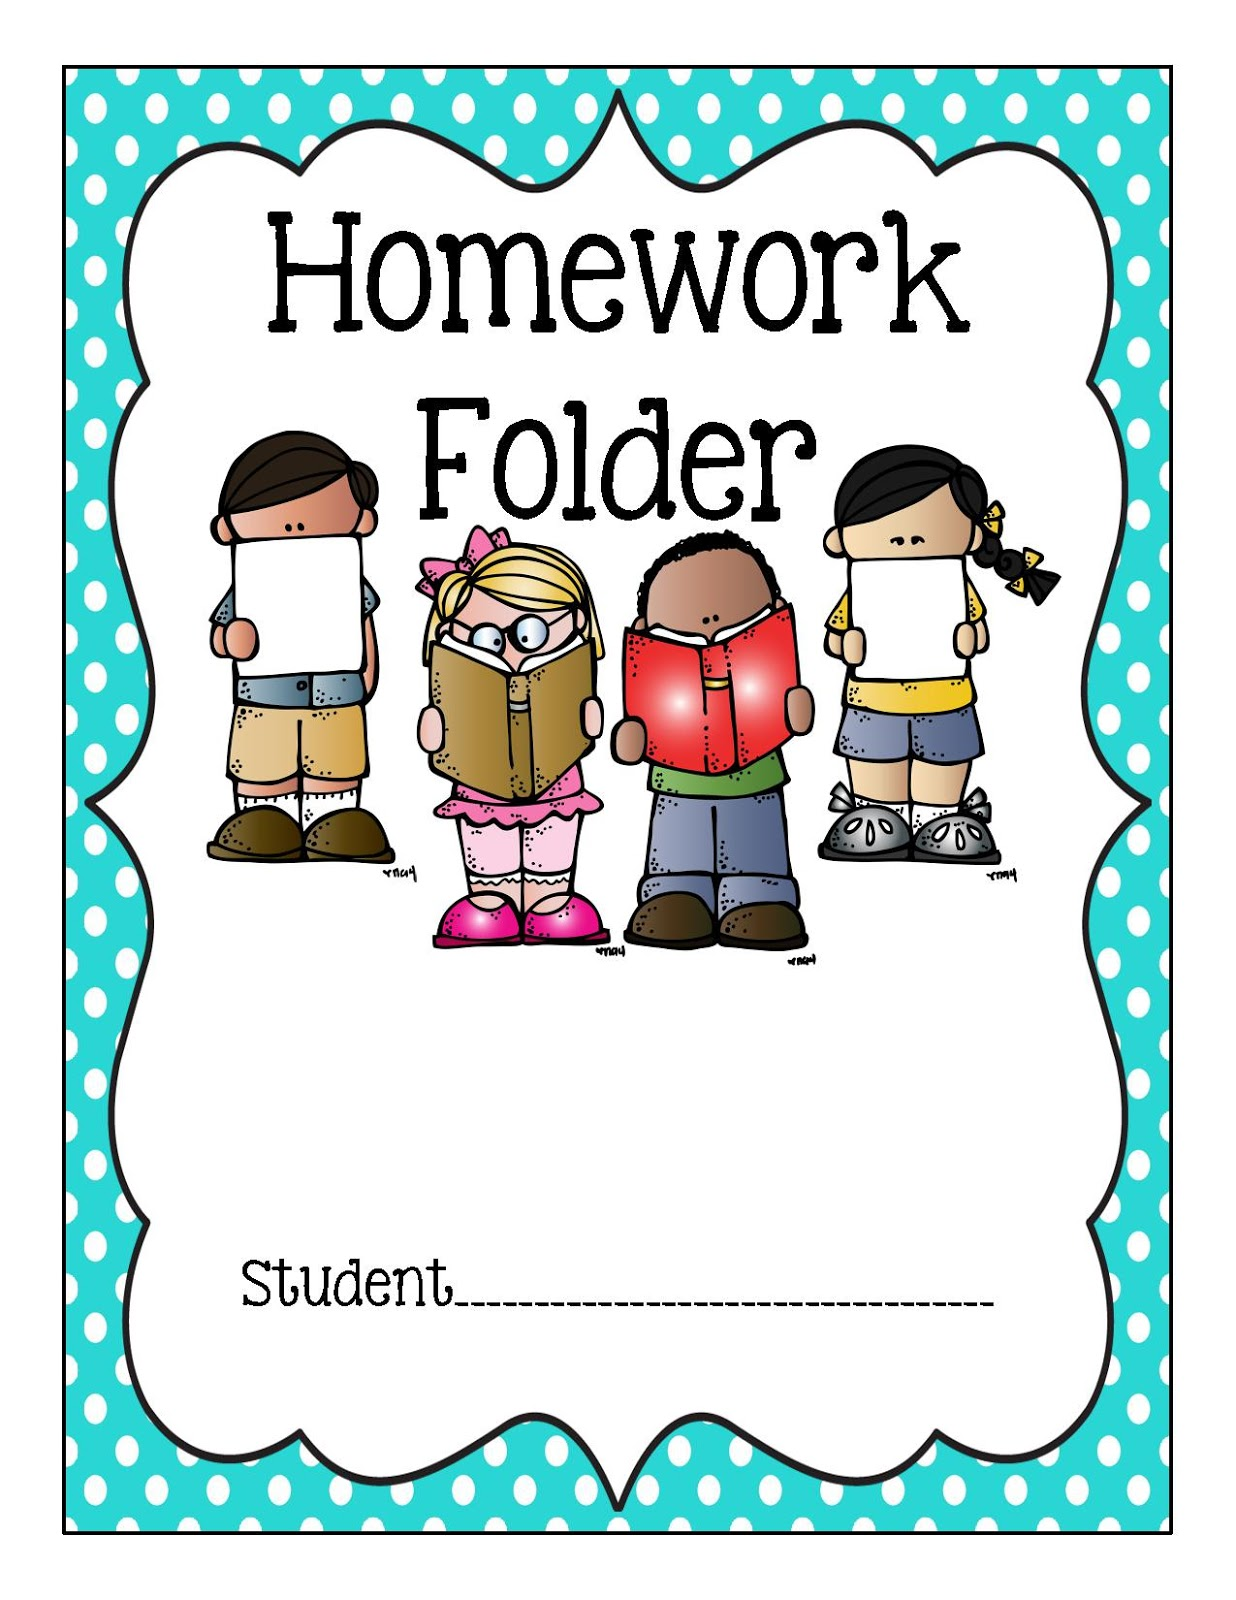 Binder Clipart Homework Binder Homework Transparent Free